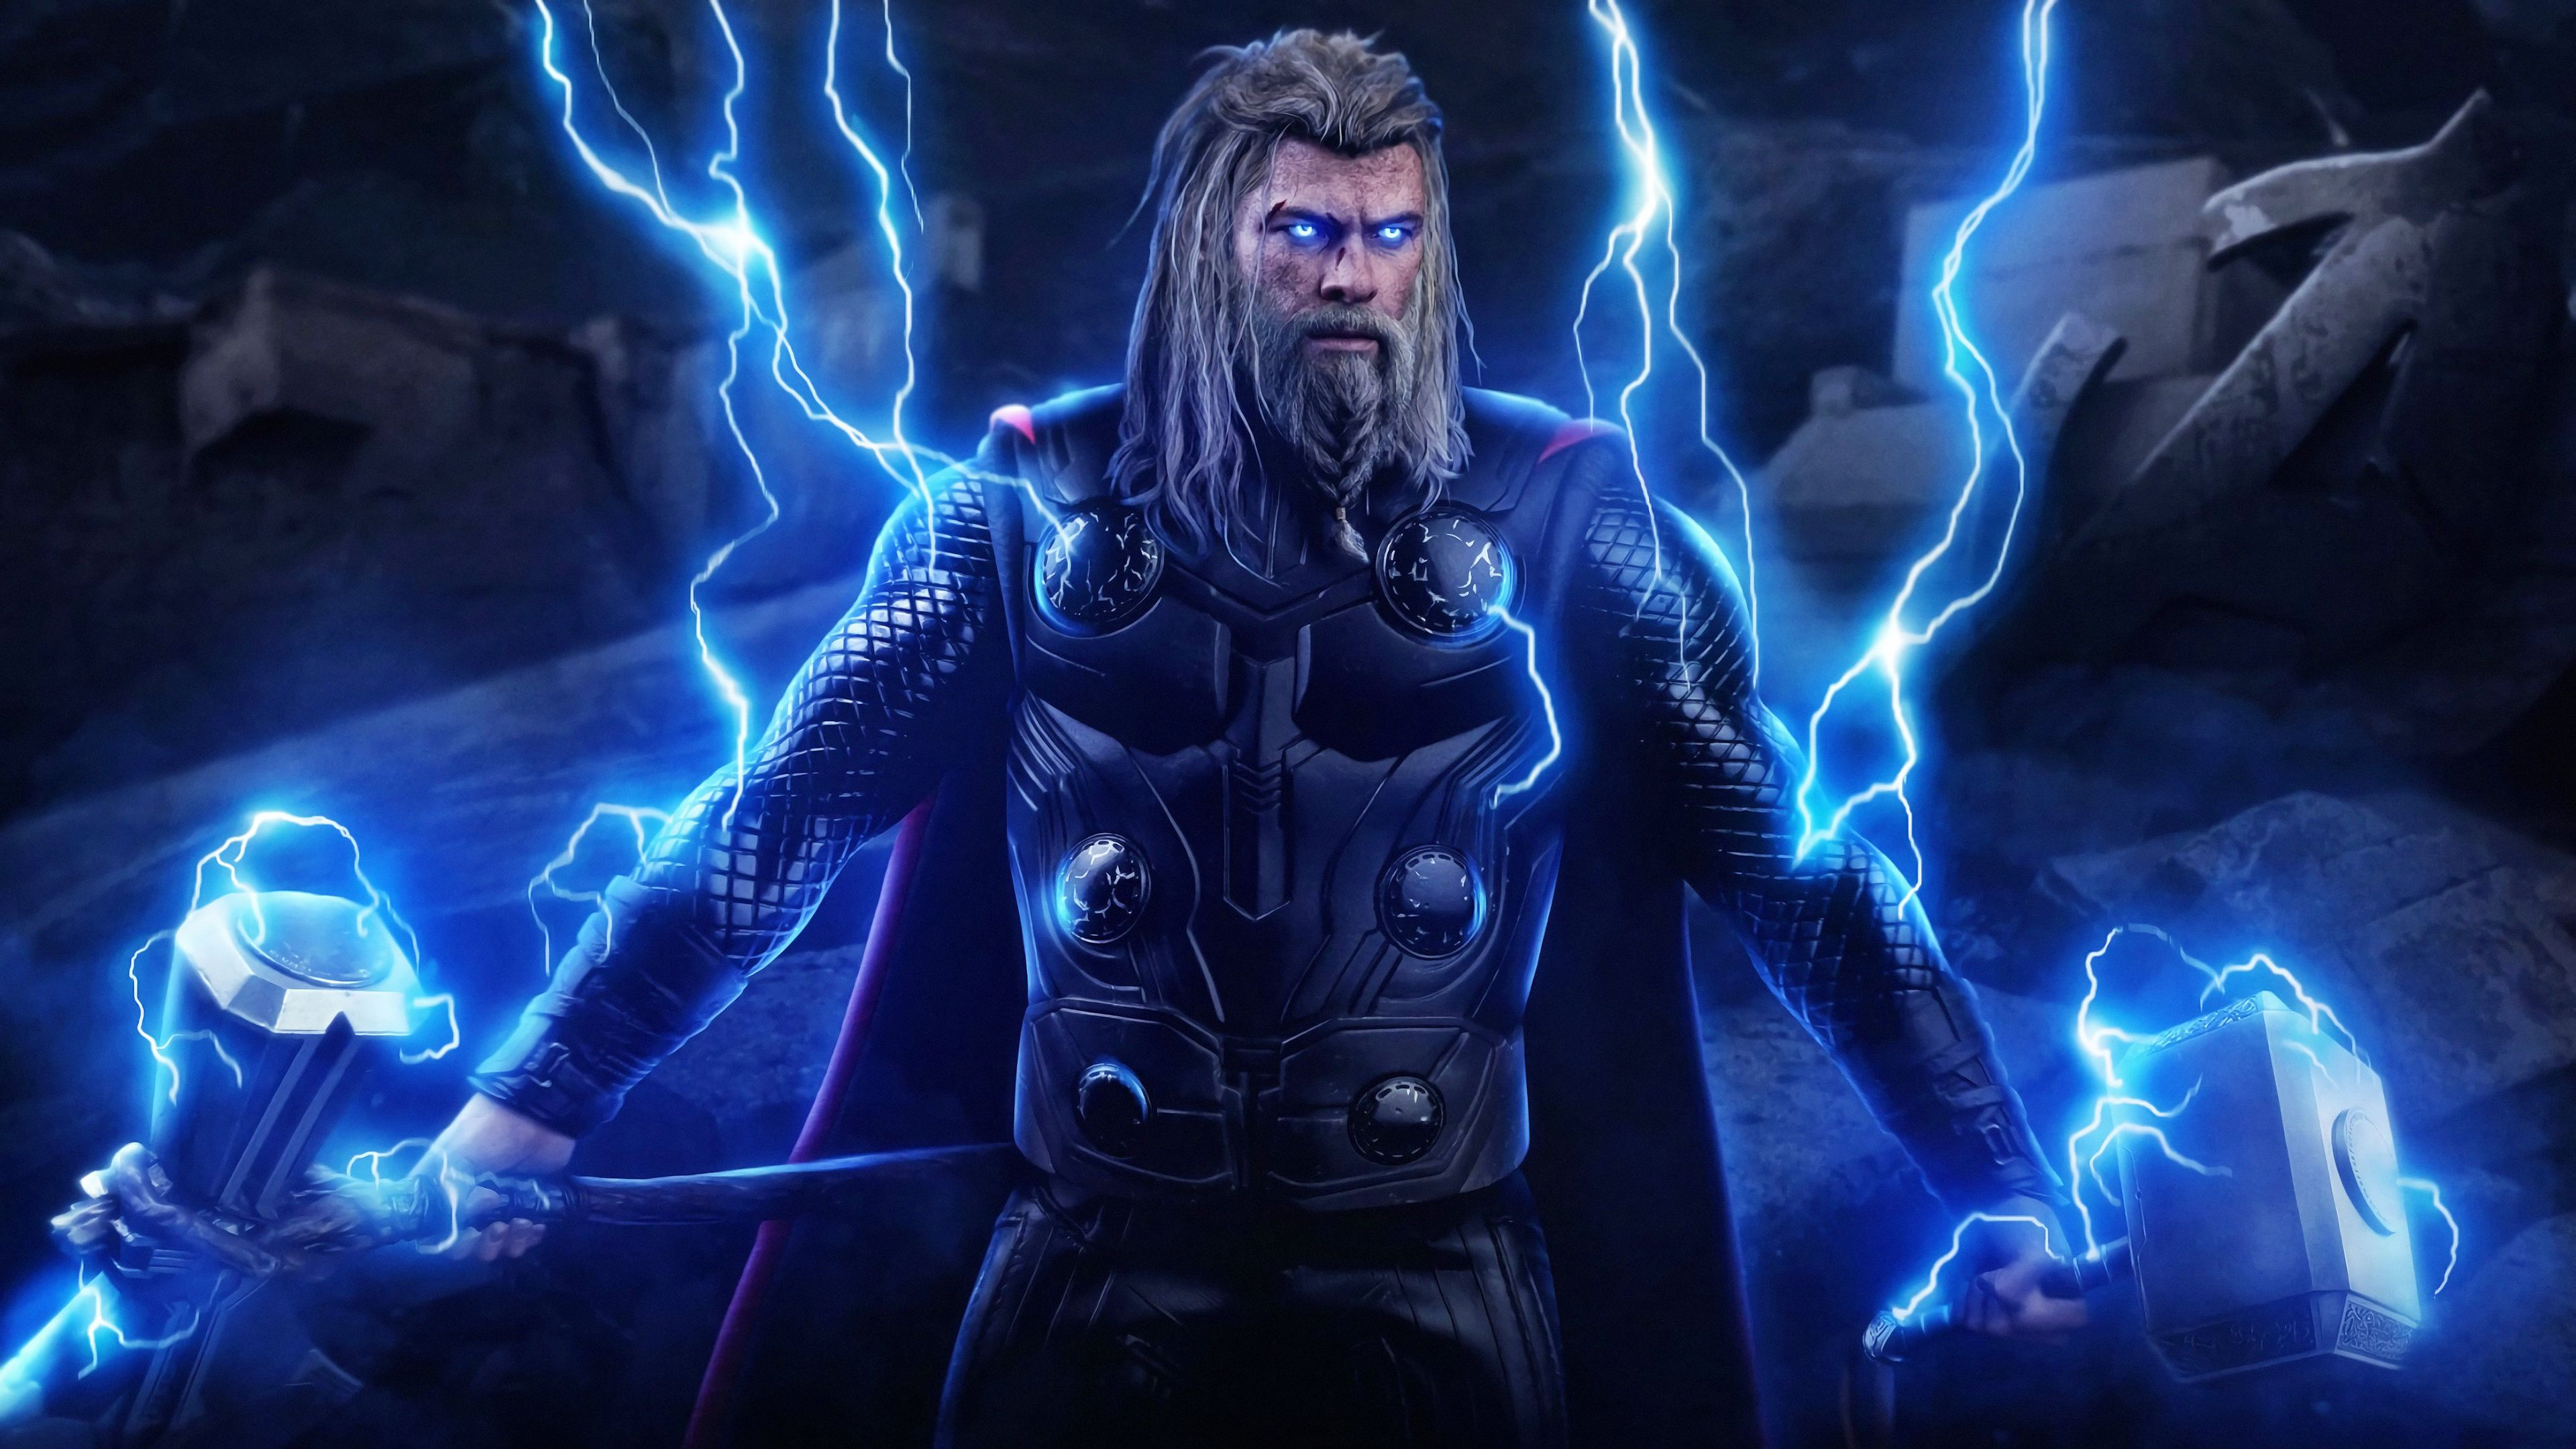 Wallpaper 4k New Thor Avengers Endgame 4k Wallpapers Artwork Wallpapers Avengers Endgame Wallpapers Digital Art Wallpapers Hd Wallpapers Superheroes Wallpa In 2020 Thor Wallpaper Thor Female Thor